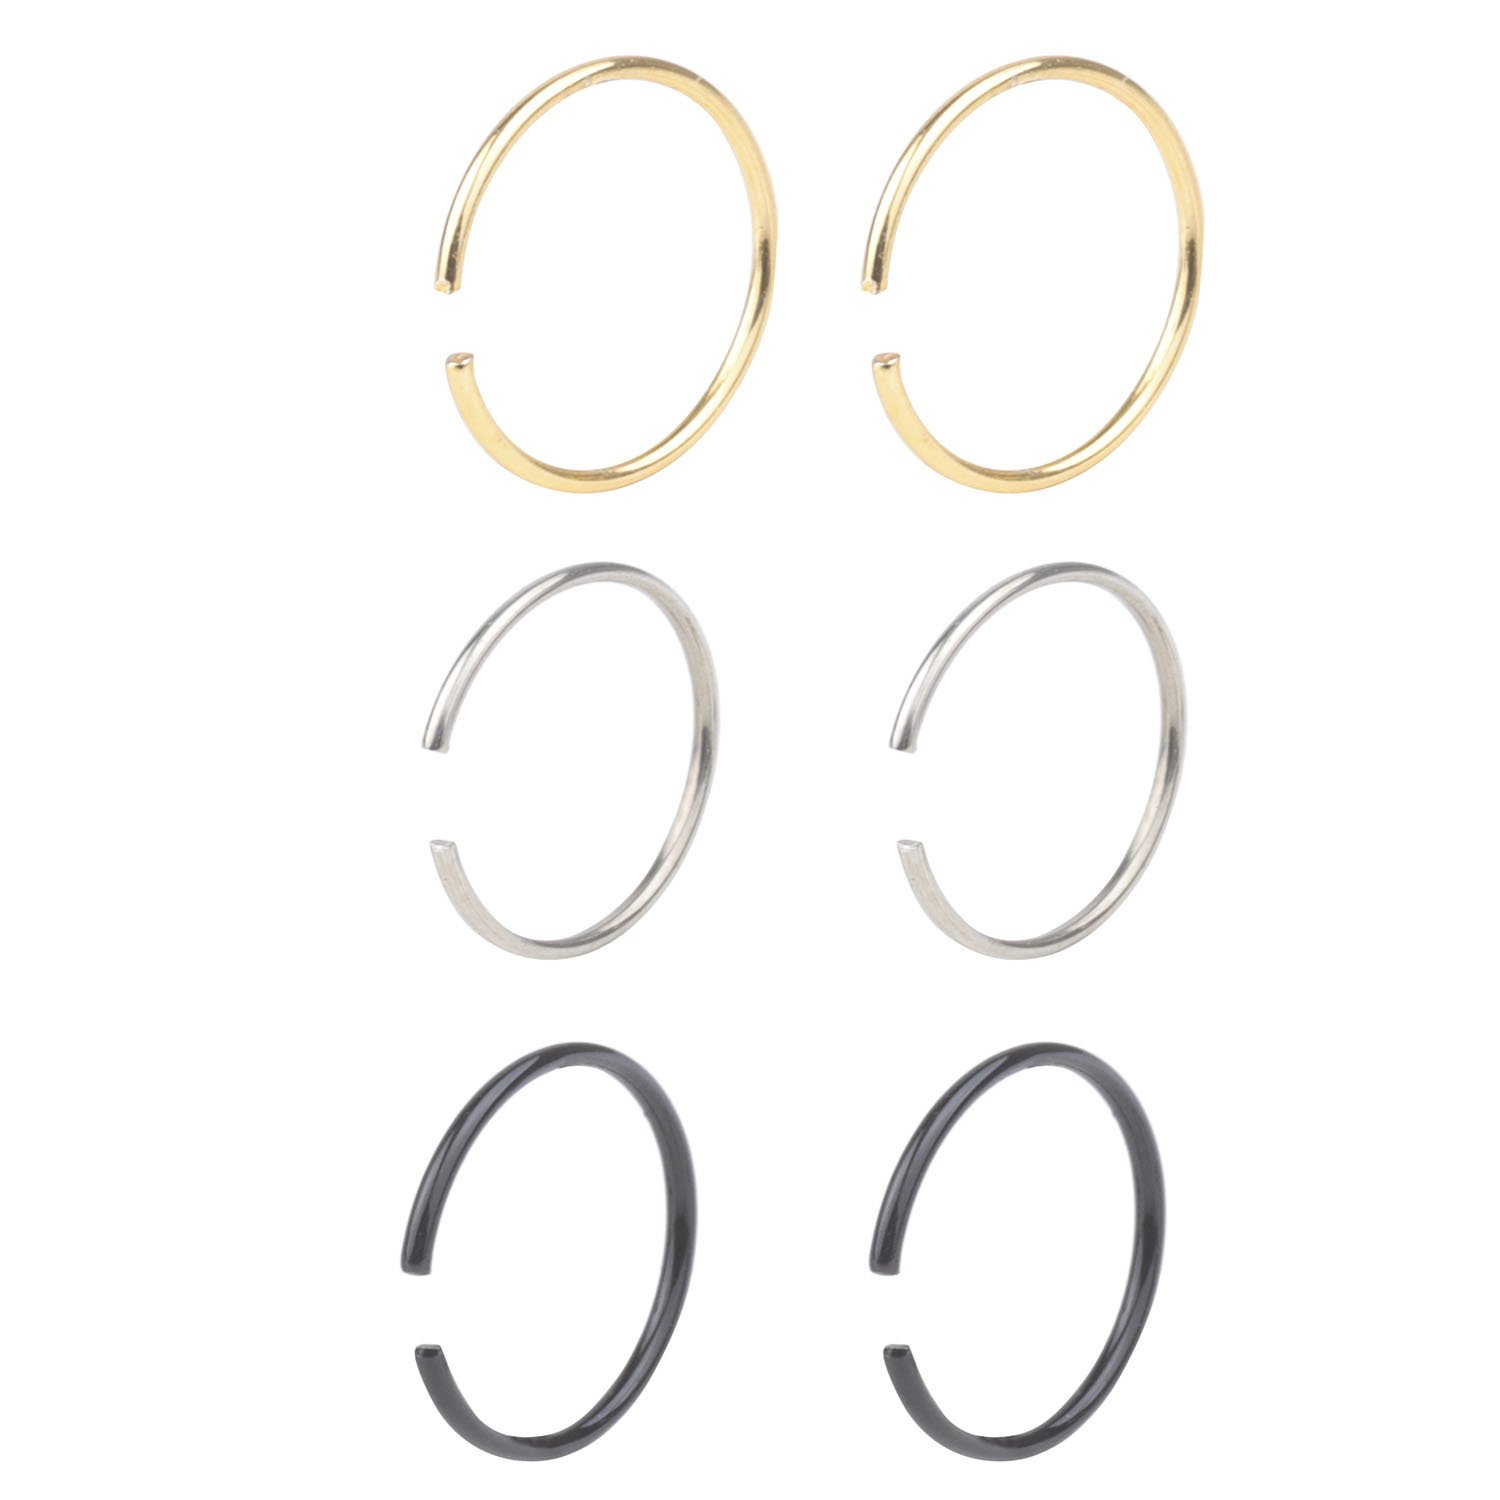 That's Us Women's Body Jewelry 20G Non Pierced Stainless Steel Clip on Closure Round Ring Fake Nose Lip Helix Cartilage Tragus Ear Hoop 6mm 6pcs, Black, Gold, Steel